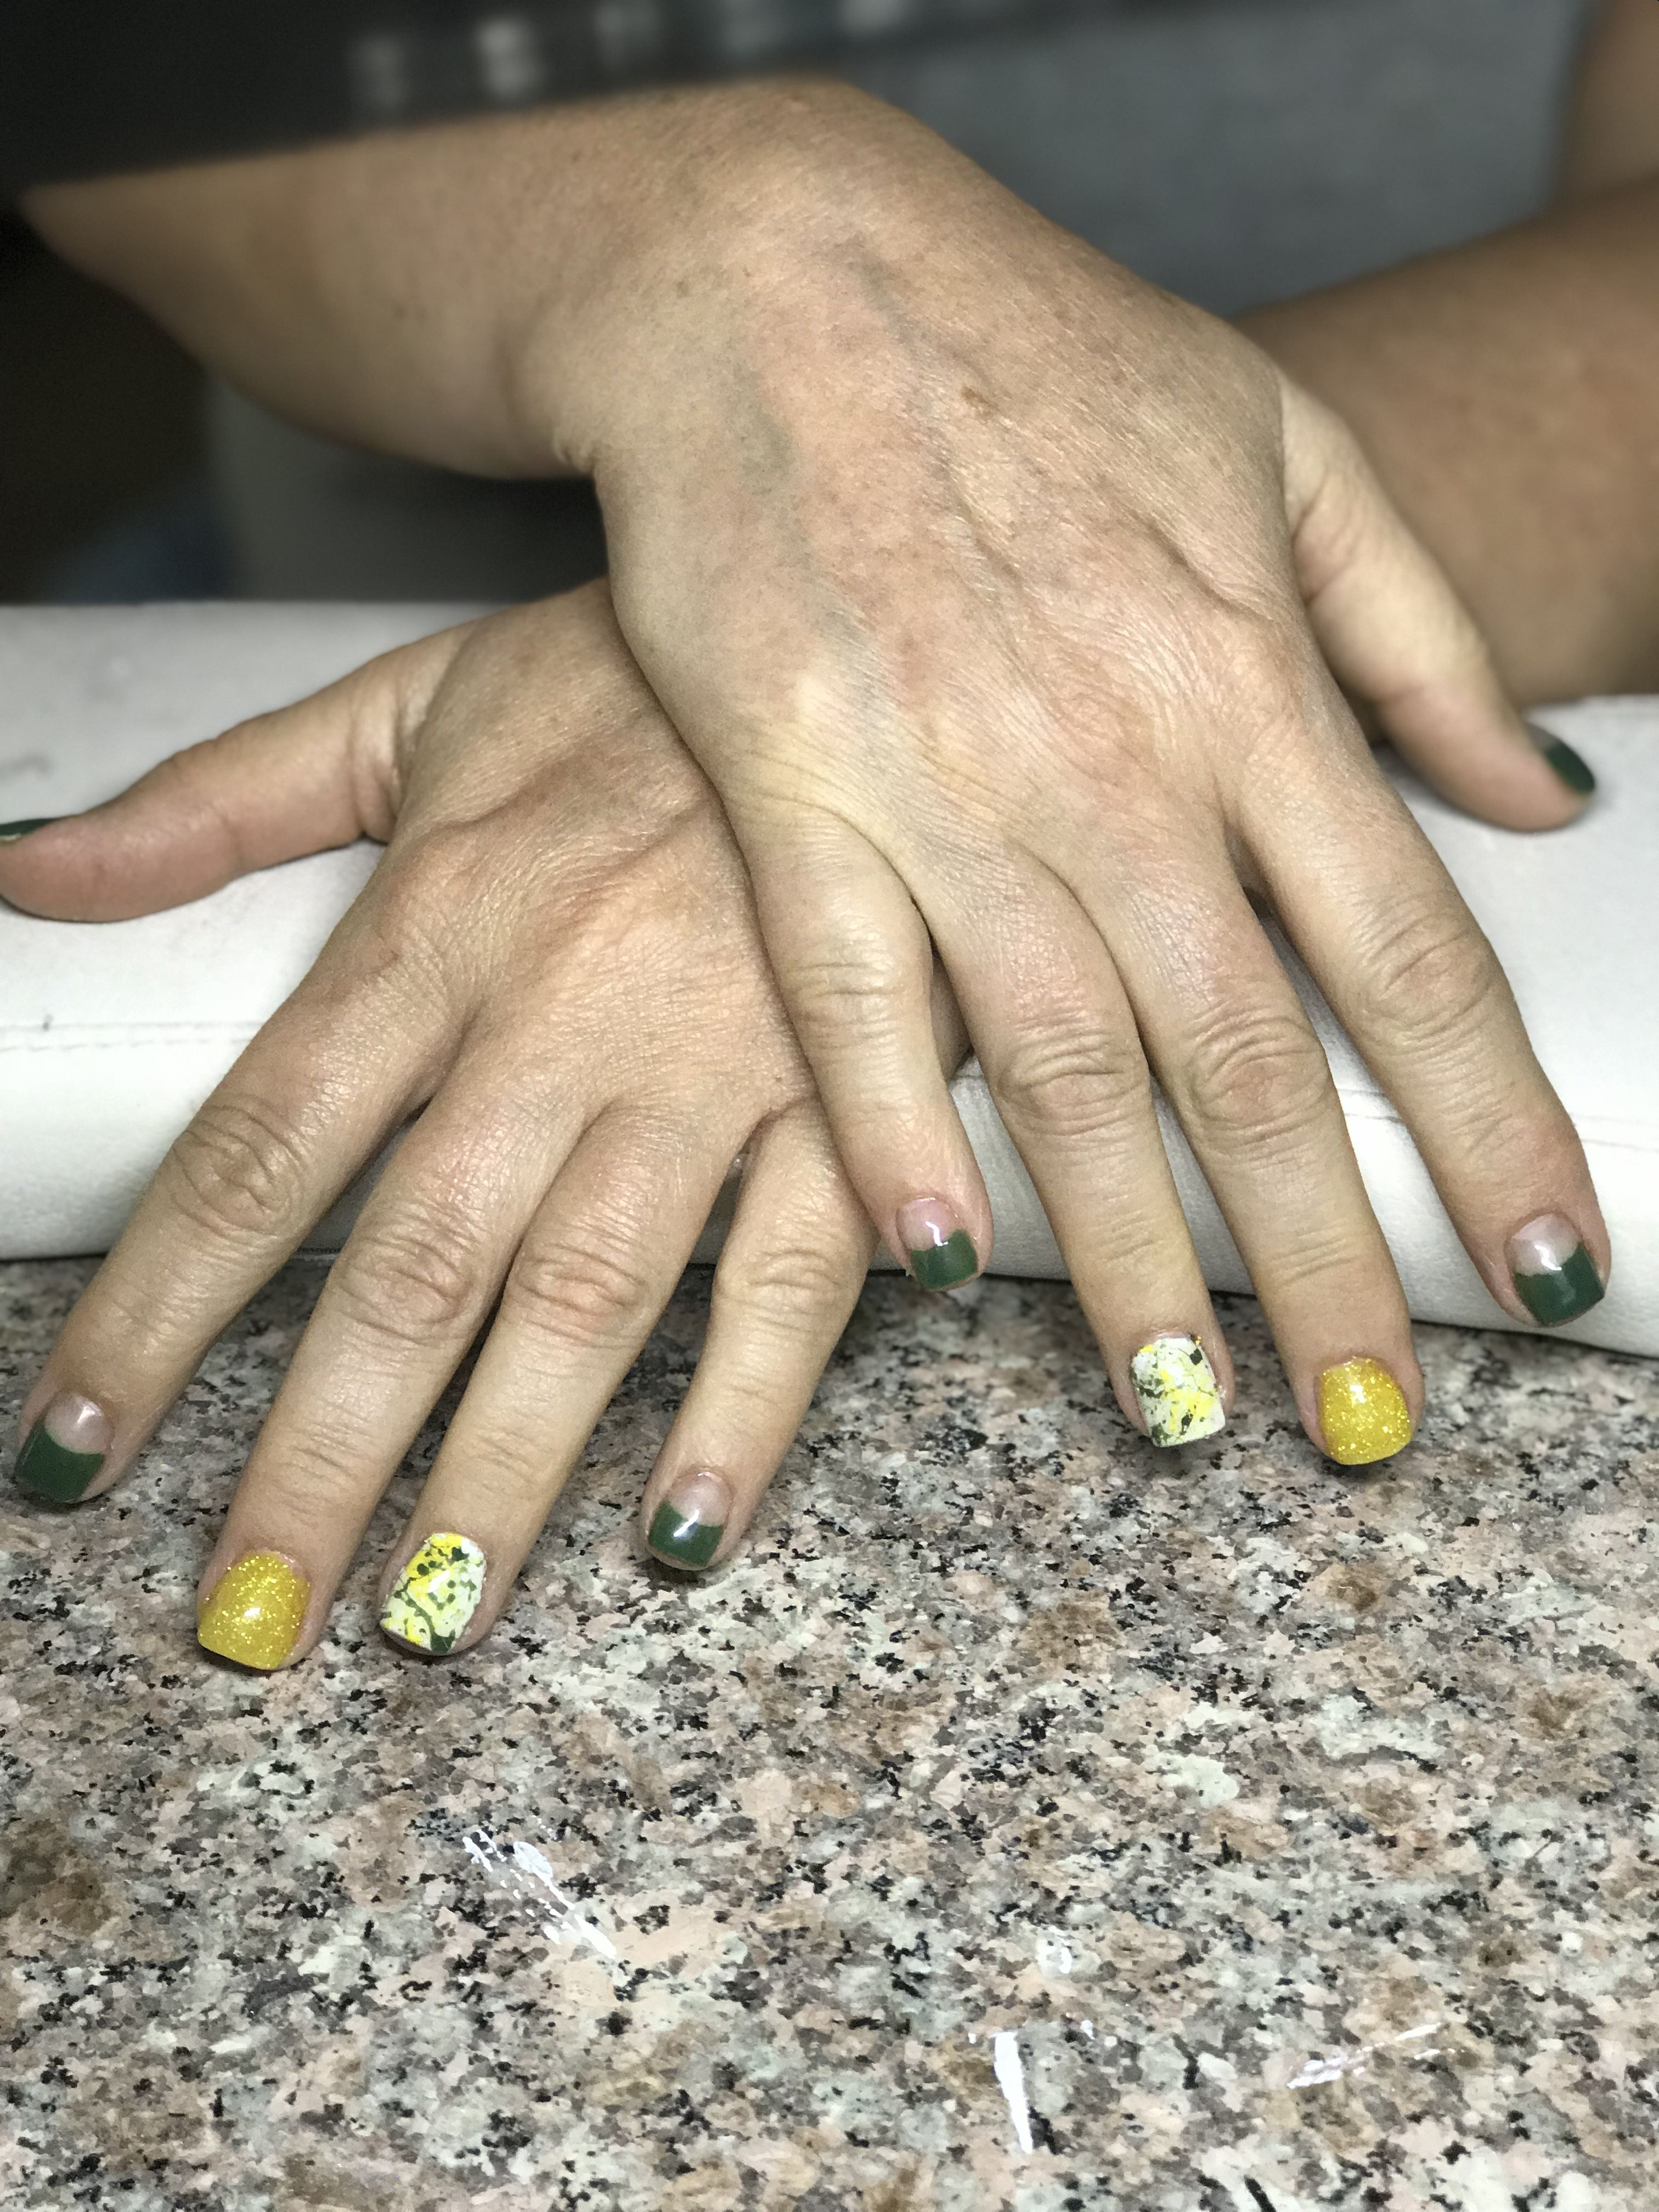 Greenbay Packers Nails Clients Request To Have The Tips Close Her Cuticle Like